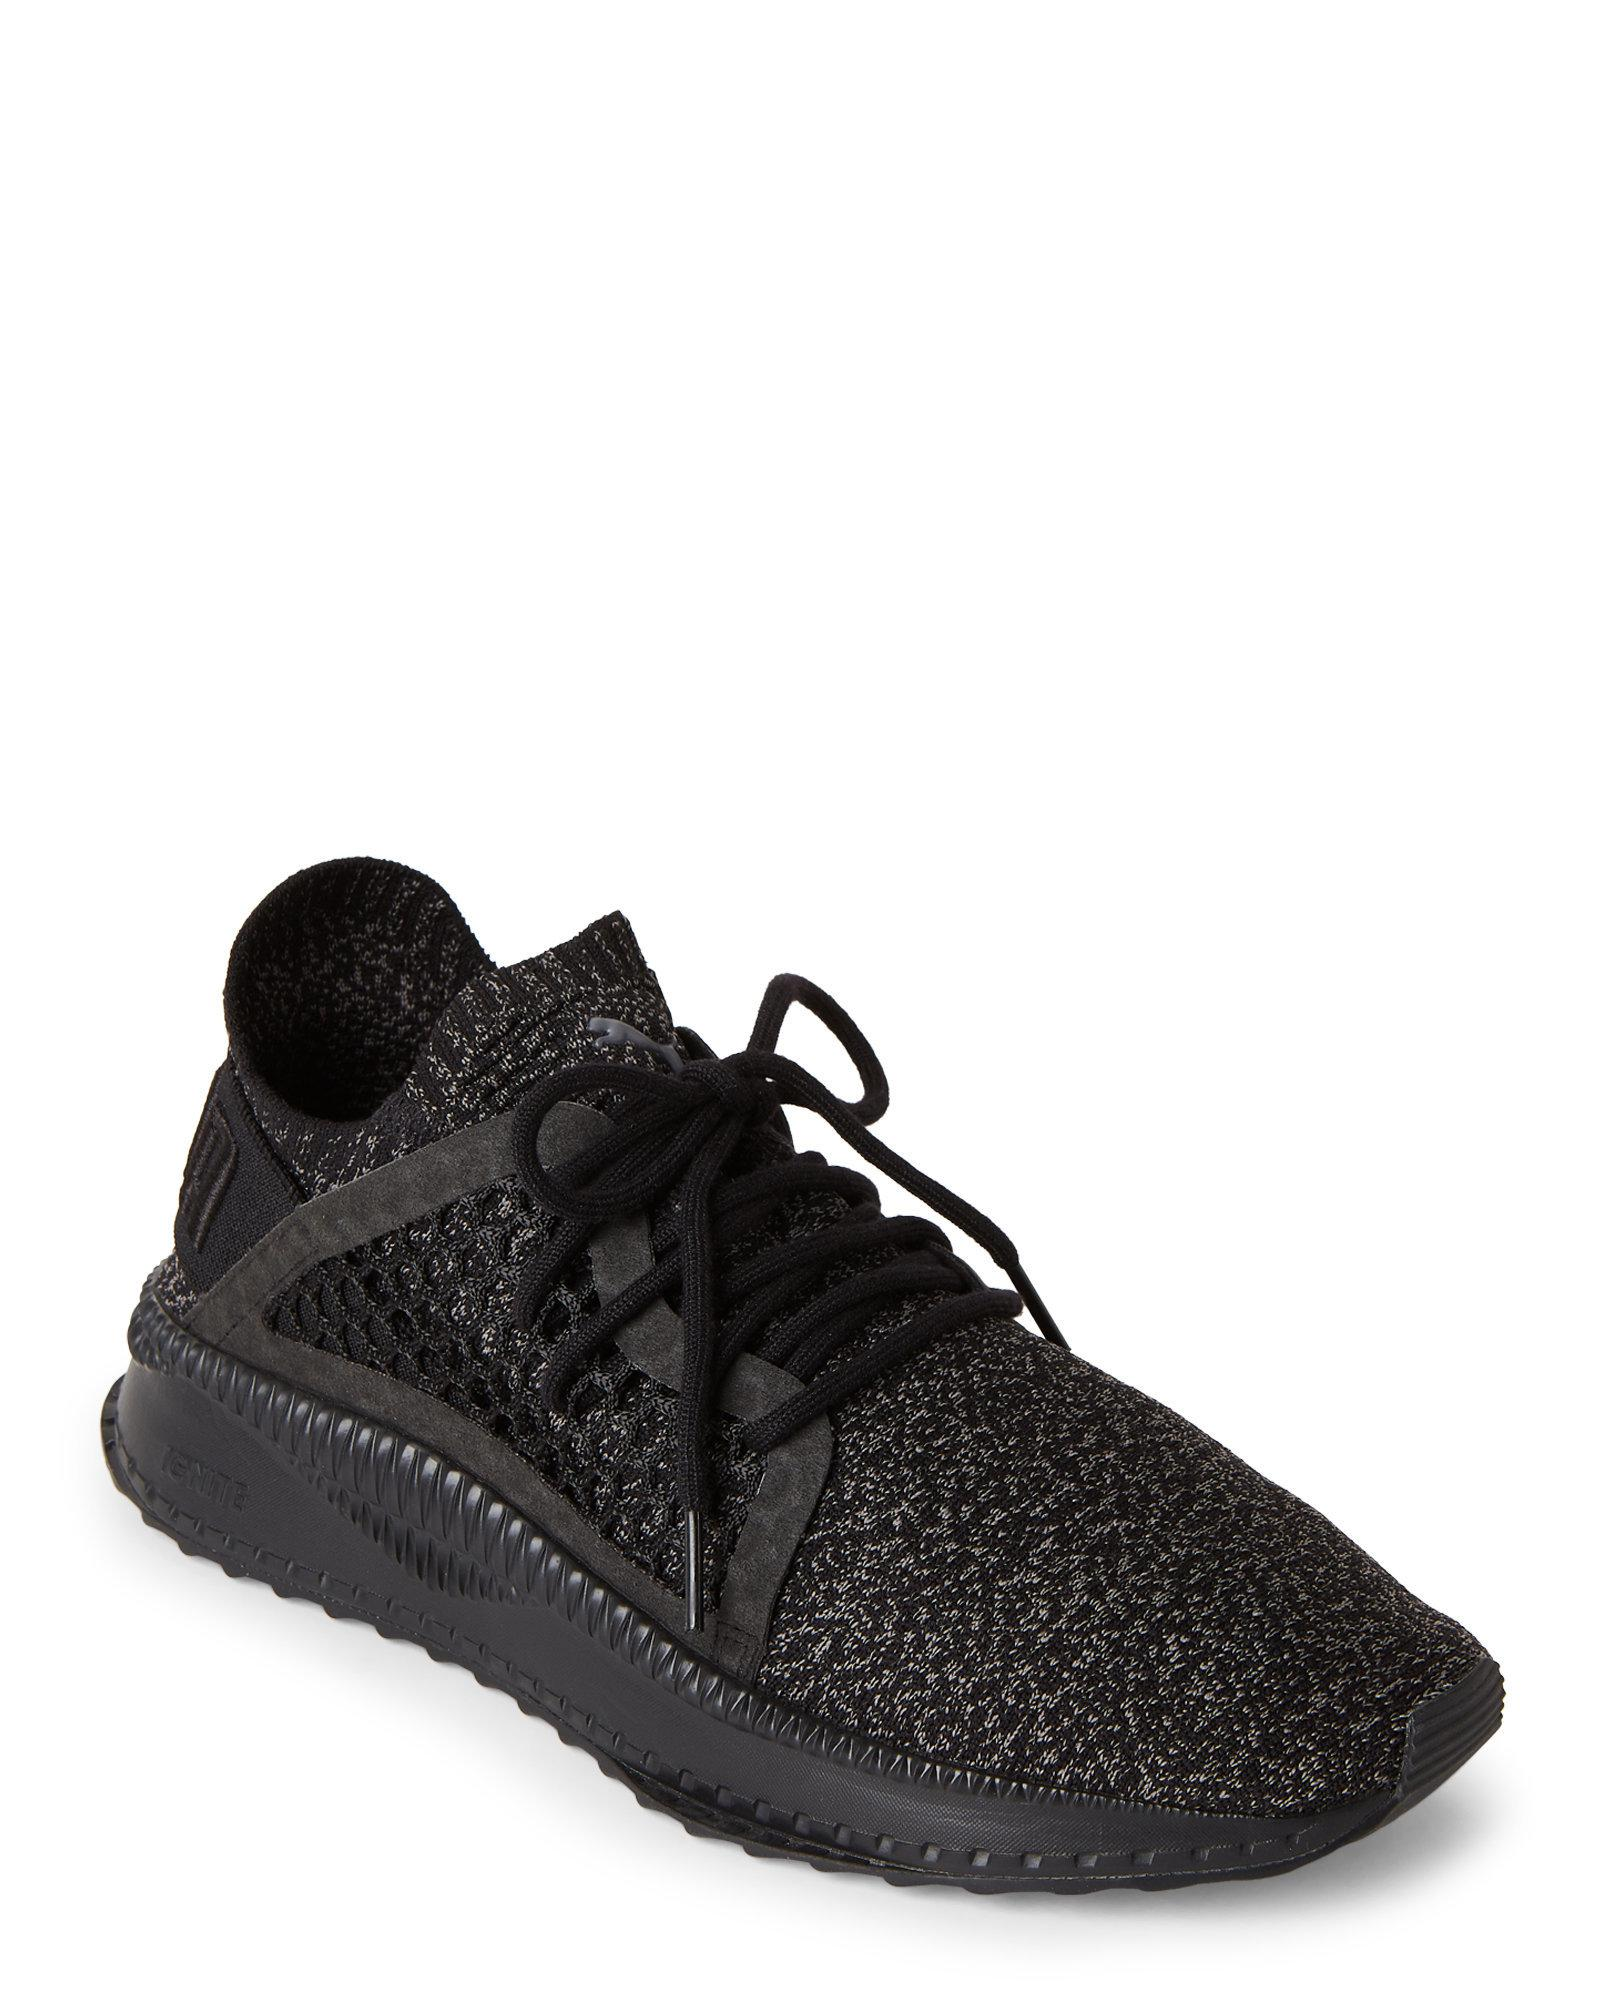 Lyst - PUMA Black   Steel Grey Tsugi Netfit Evoknit Sneakers in ... 71ee02fc44